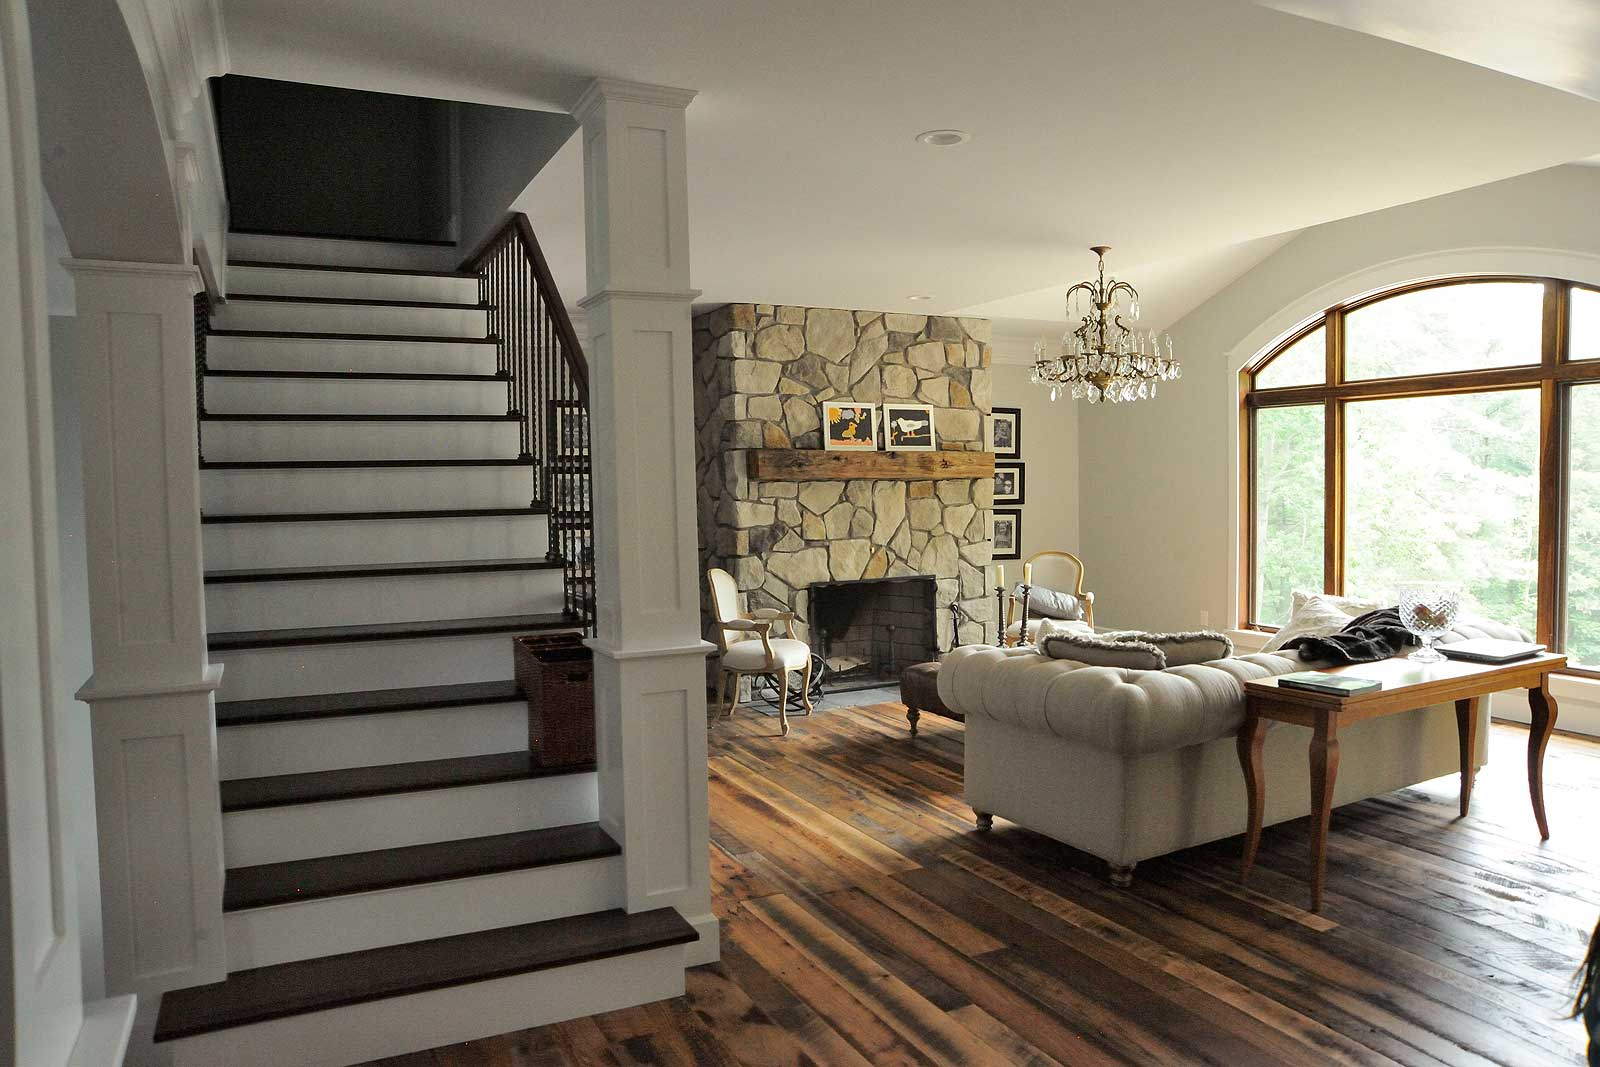 Traditional Styled Home Rnr Designs